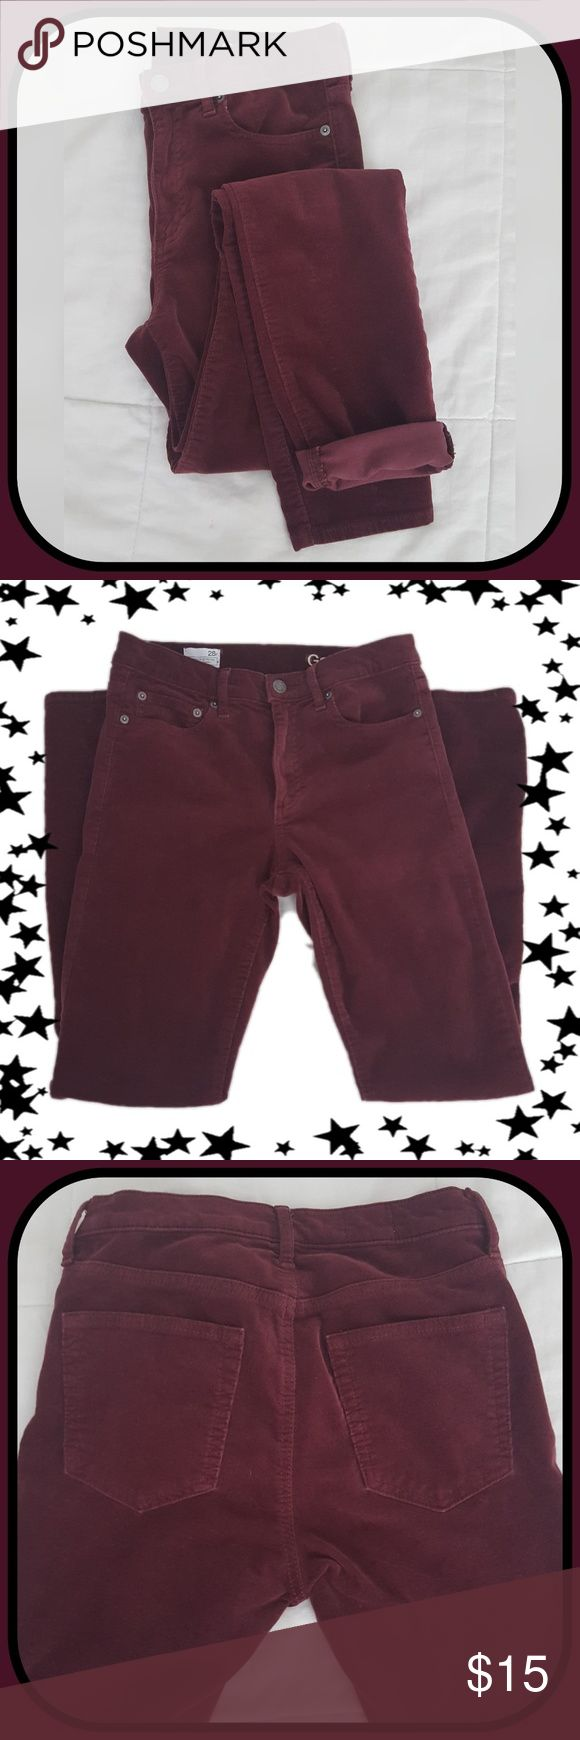 GAP 1969 True Skinny Corduroy Leggings Cord Jeans These cords are beautiful and soft. Size 28R. Skinny leg with lots of comfort and stretch. 5 pocket design. Button and zip fly. Burgundy wine color. GAP Pants Skinny